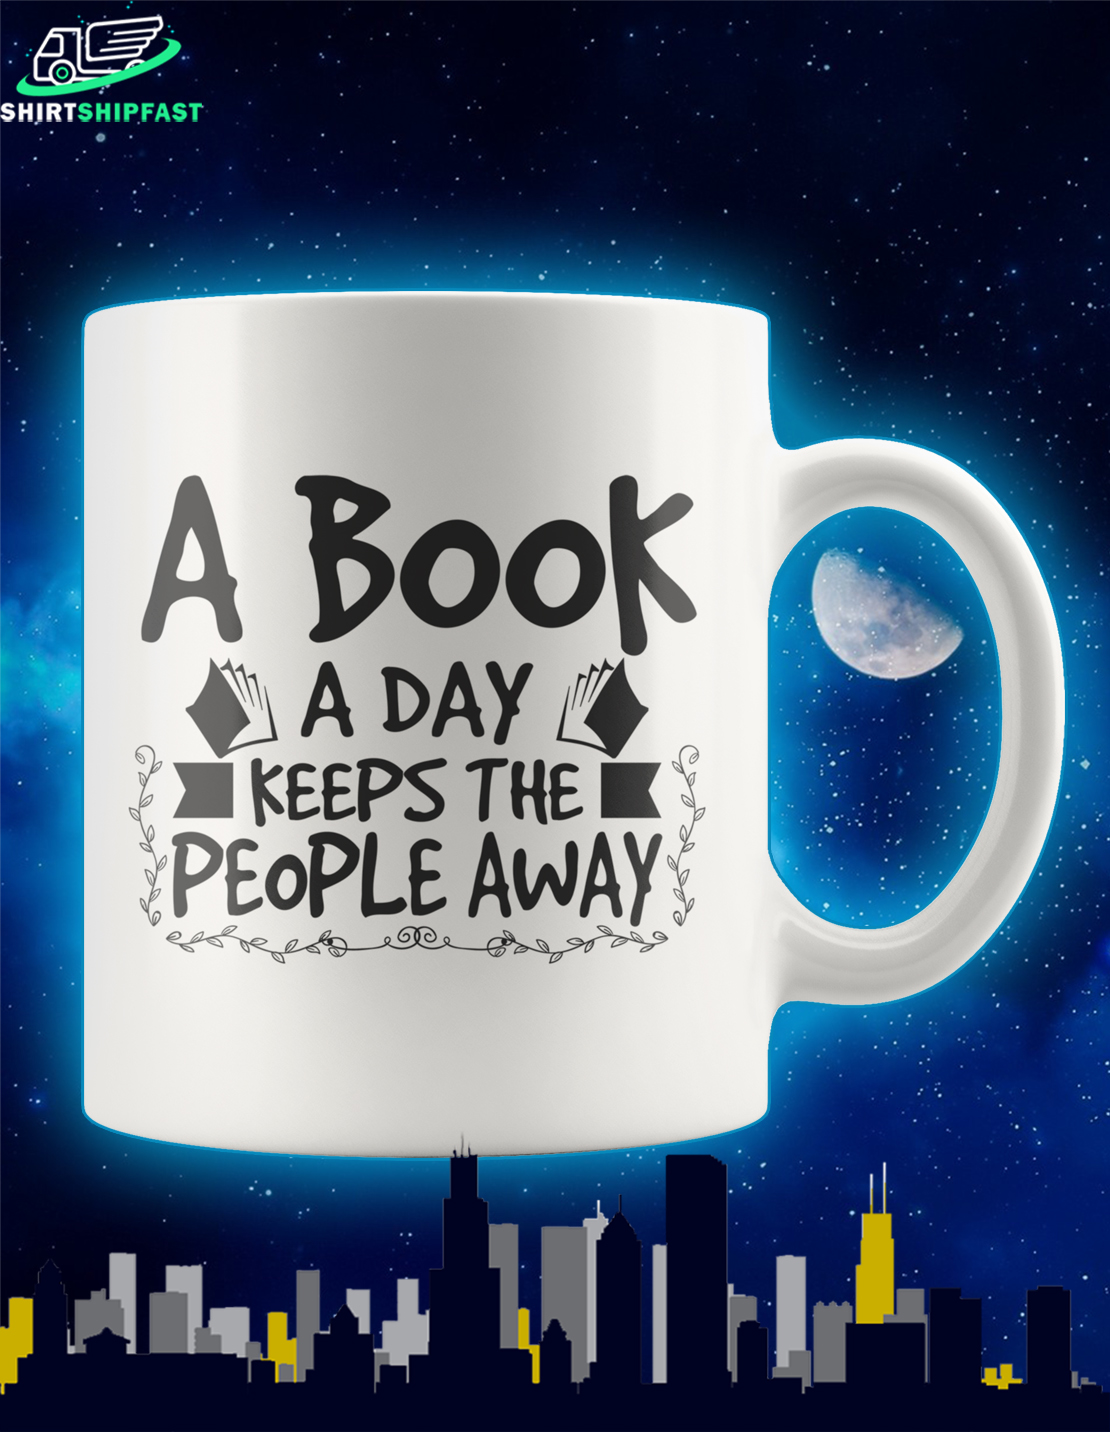 A book a day keeps the people away mug - Picture 1